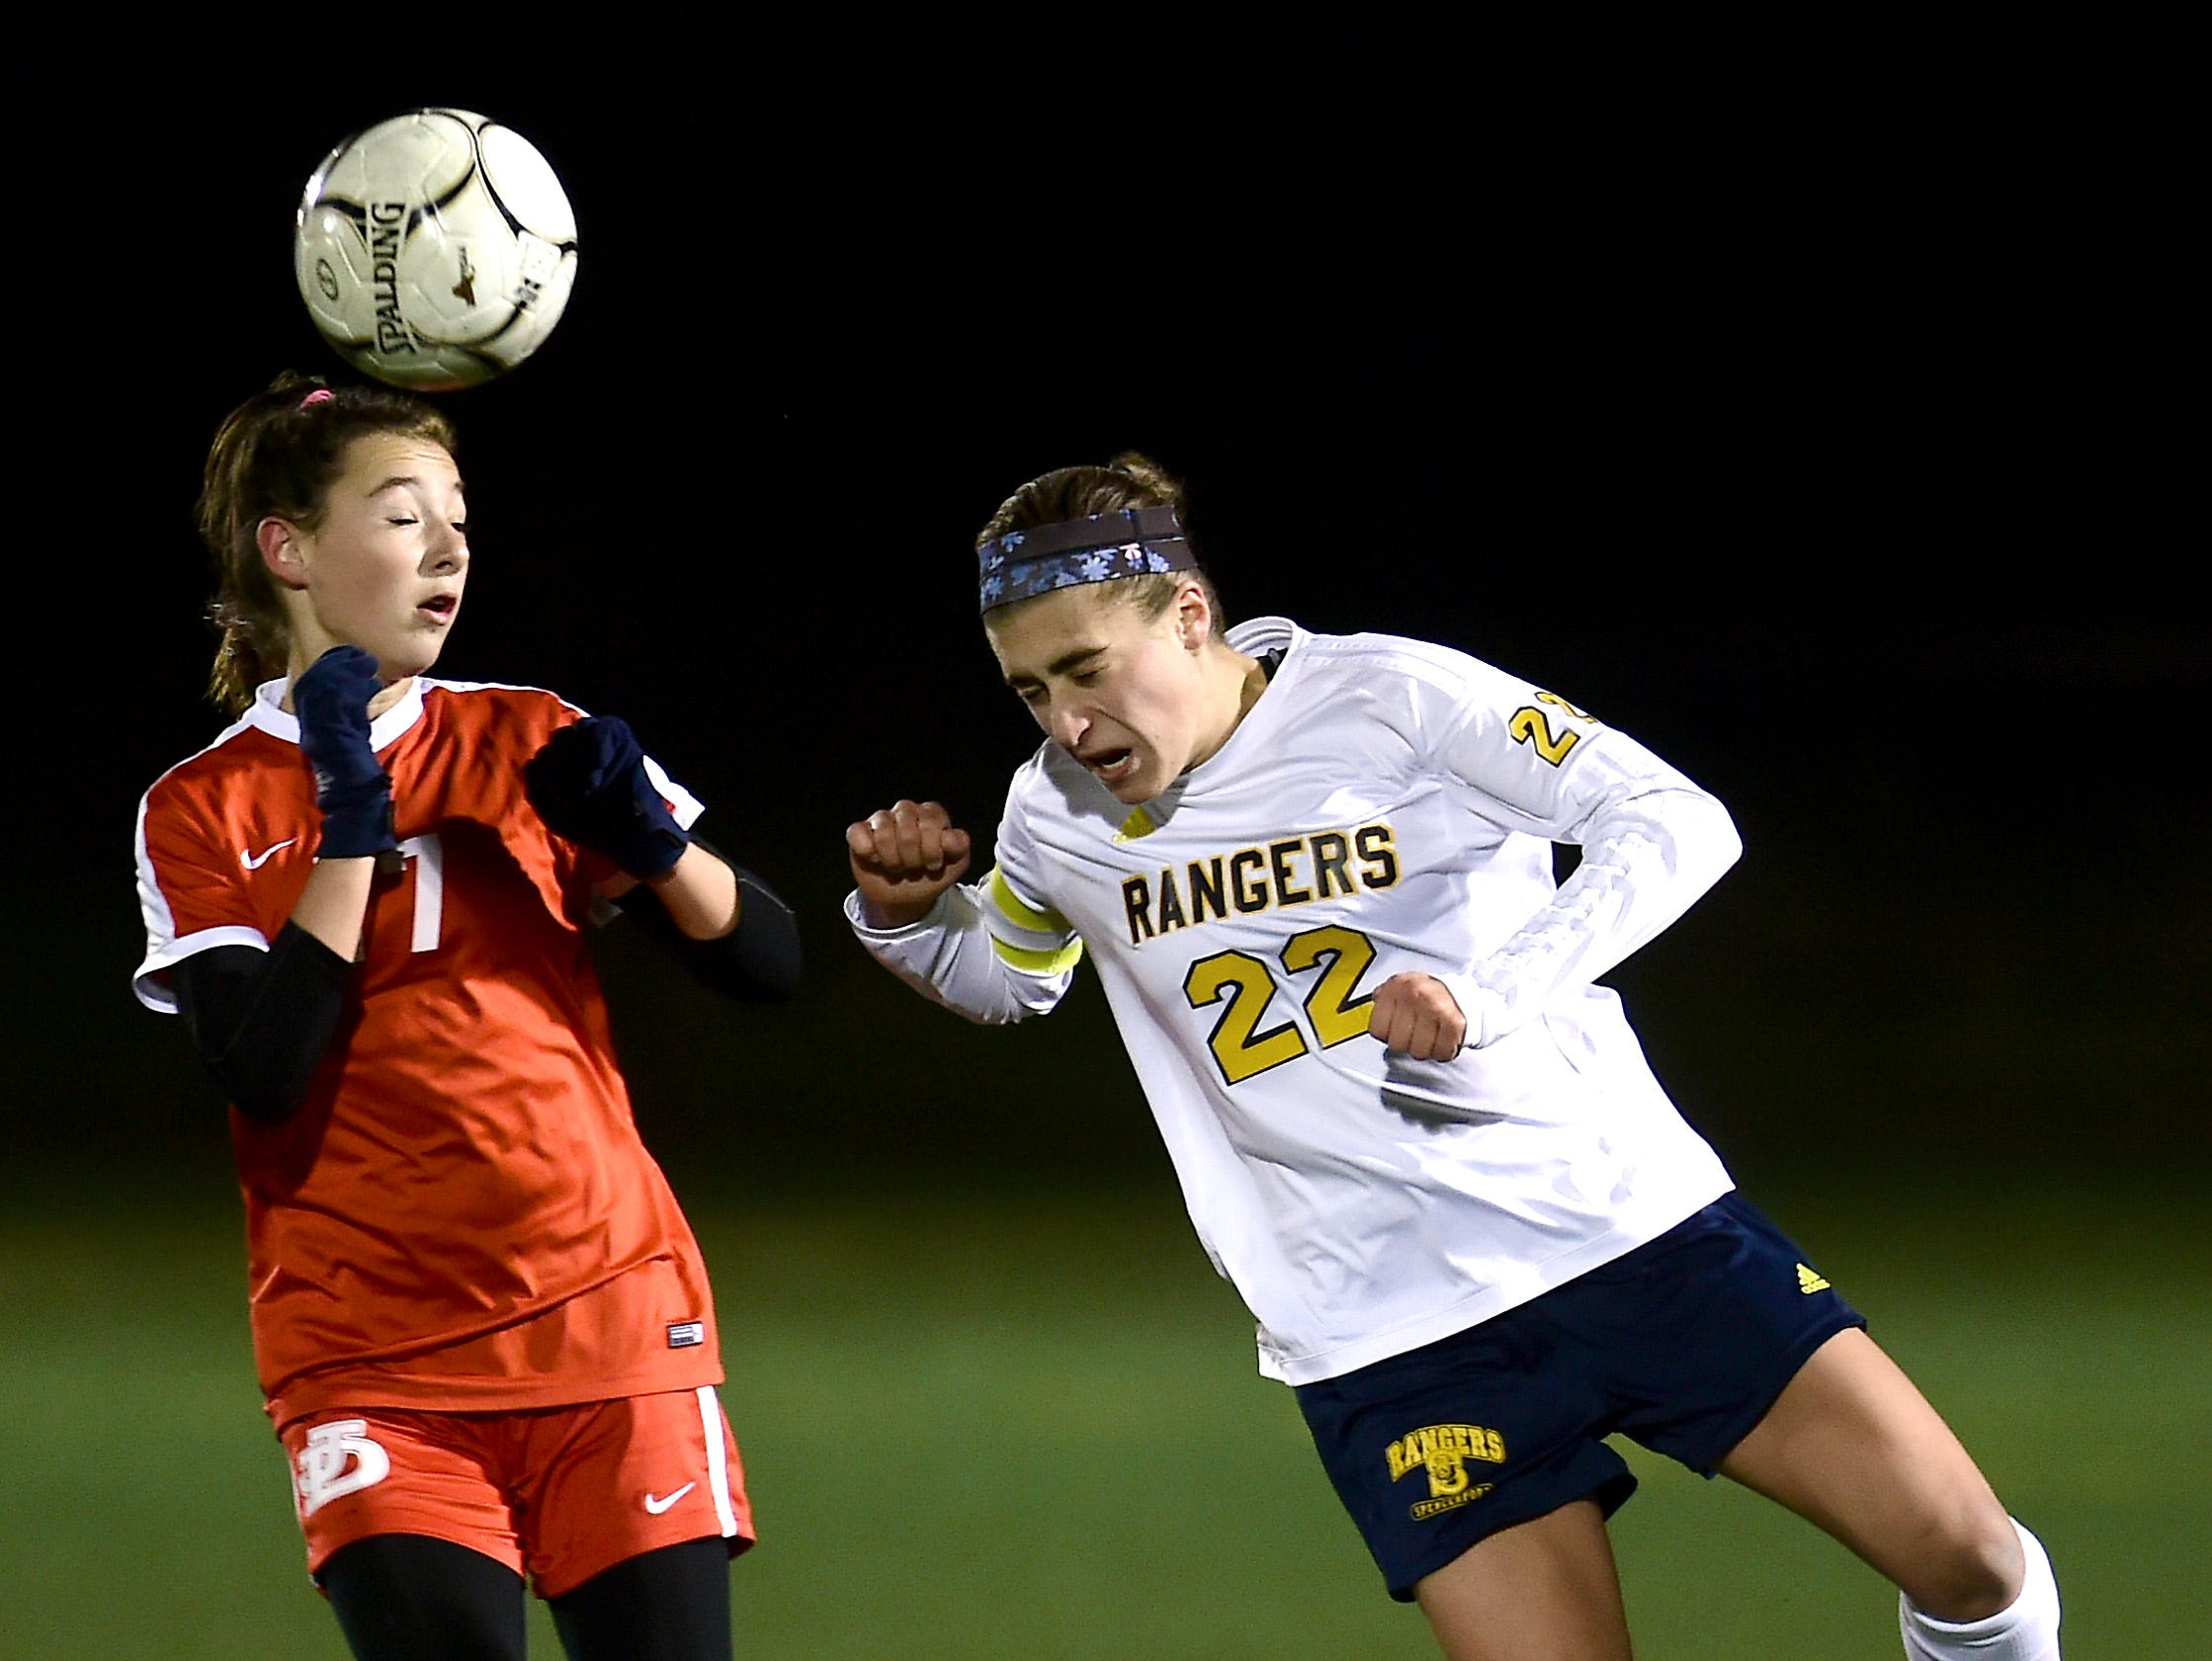 Spencerport's Olivia Wall (22) heads the ball past Jamesville-DeWitt's Sydney Balotin (7) during the Class A NYSPHSAA Girls Soccer Championship semifinal at Tompkins Cortland Community College on Nov. 10, 2018.